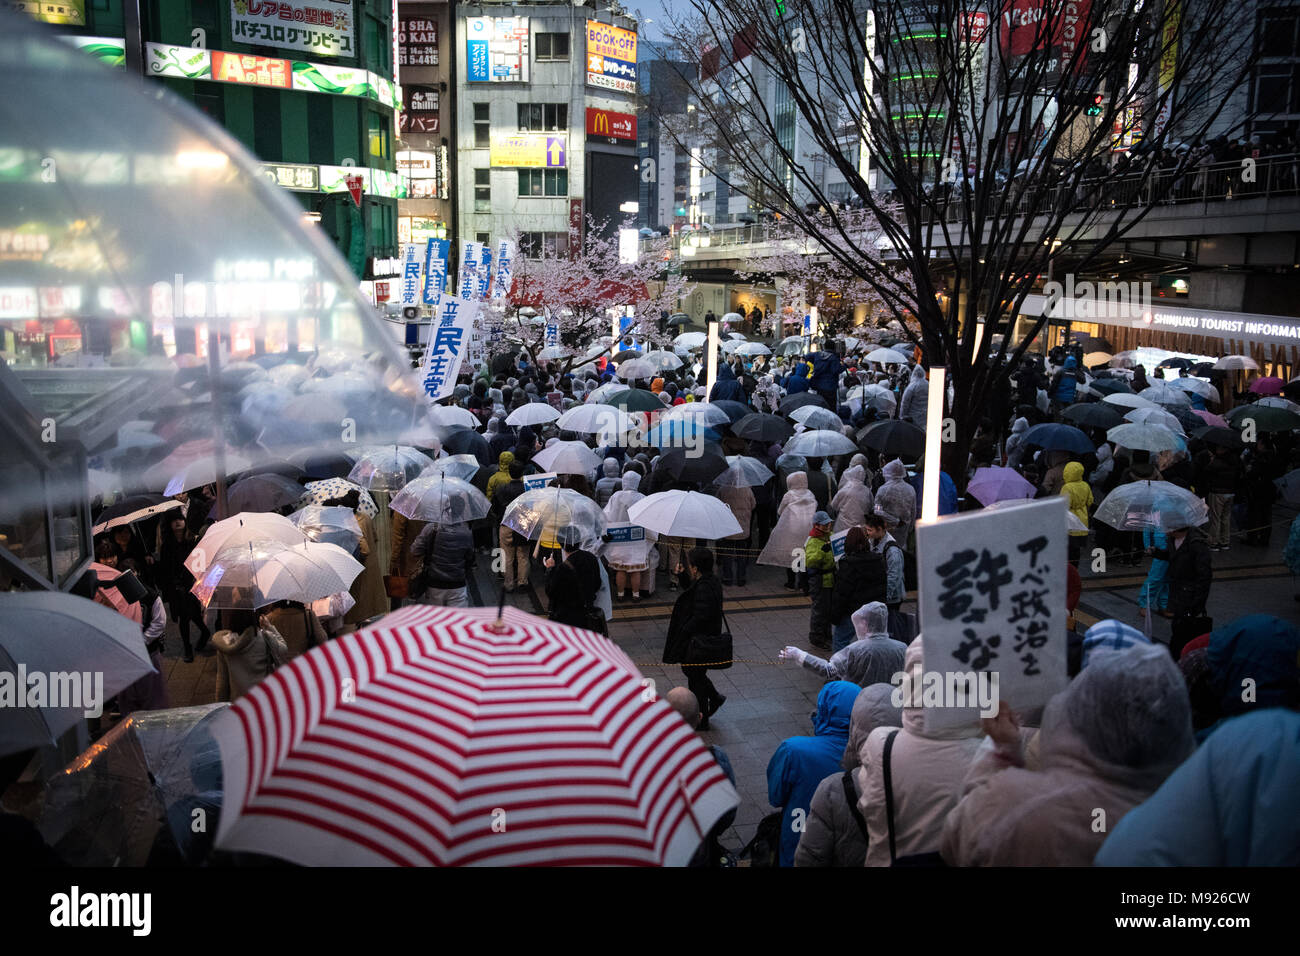 Pm Abe Stock Photos & Pm Abe Stock Images - Alamy